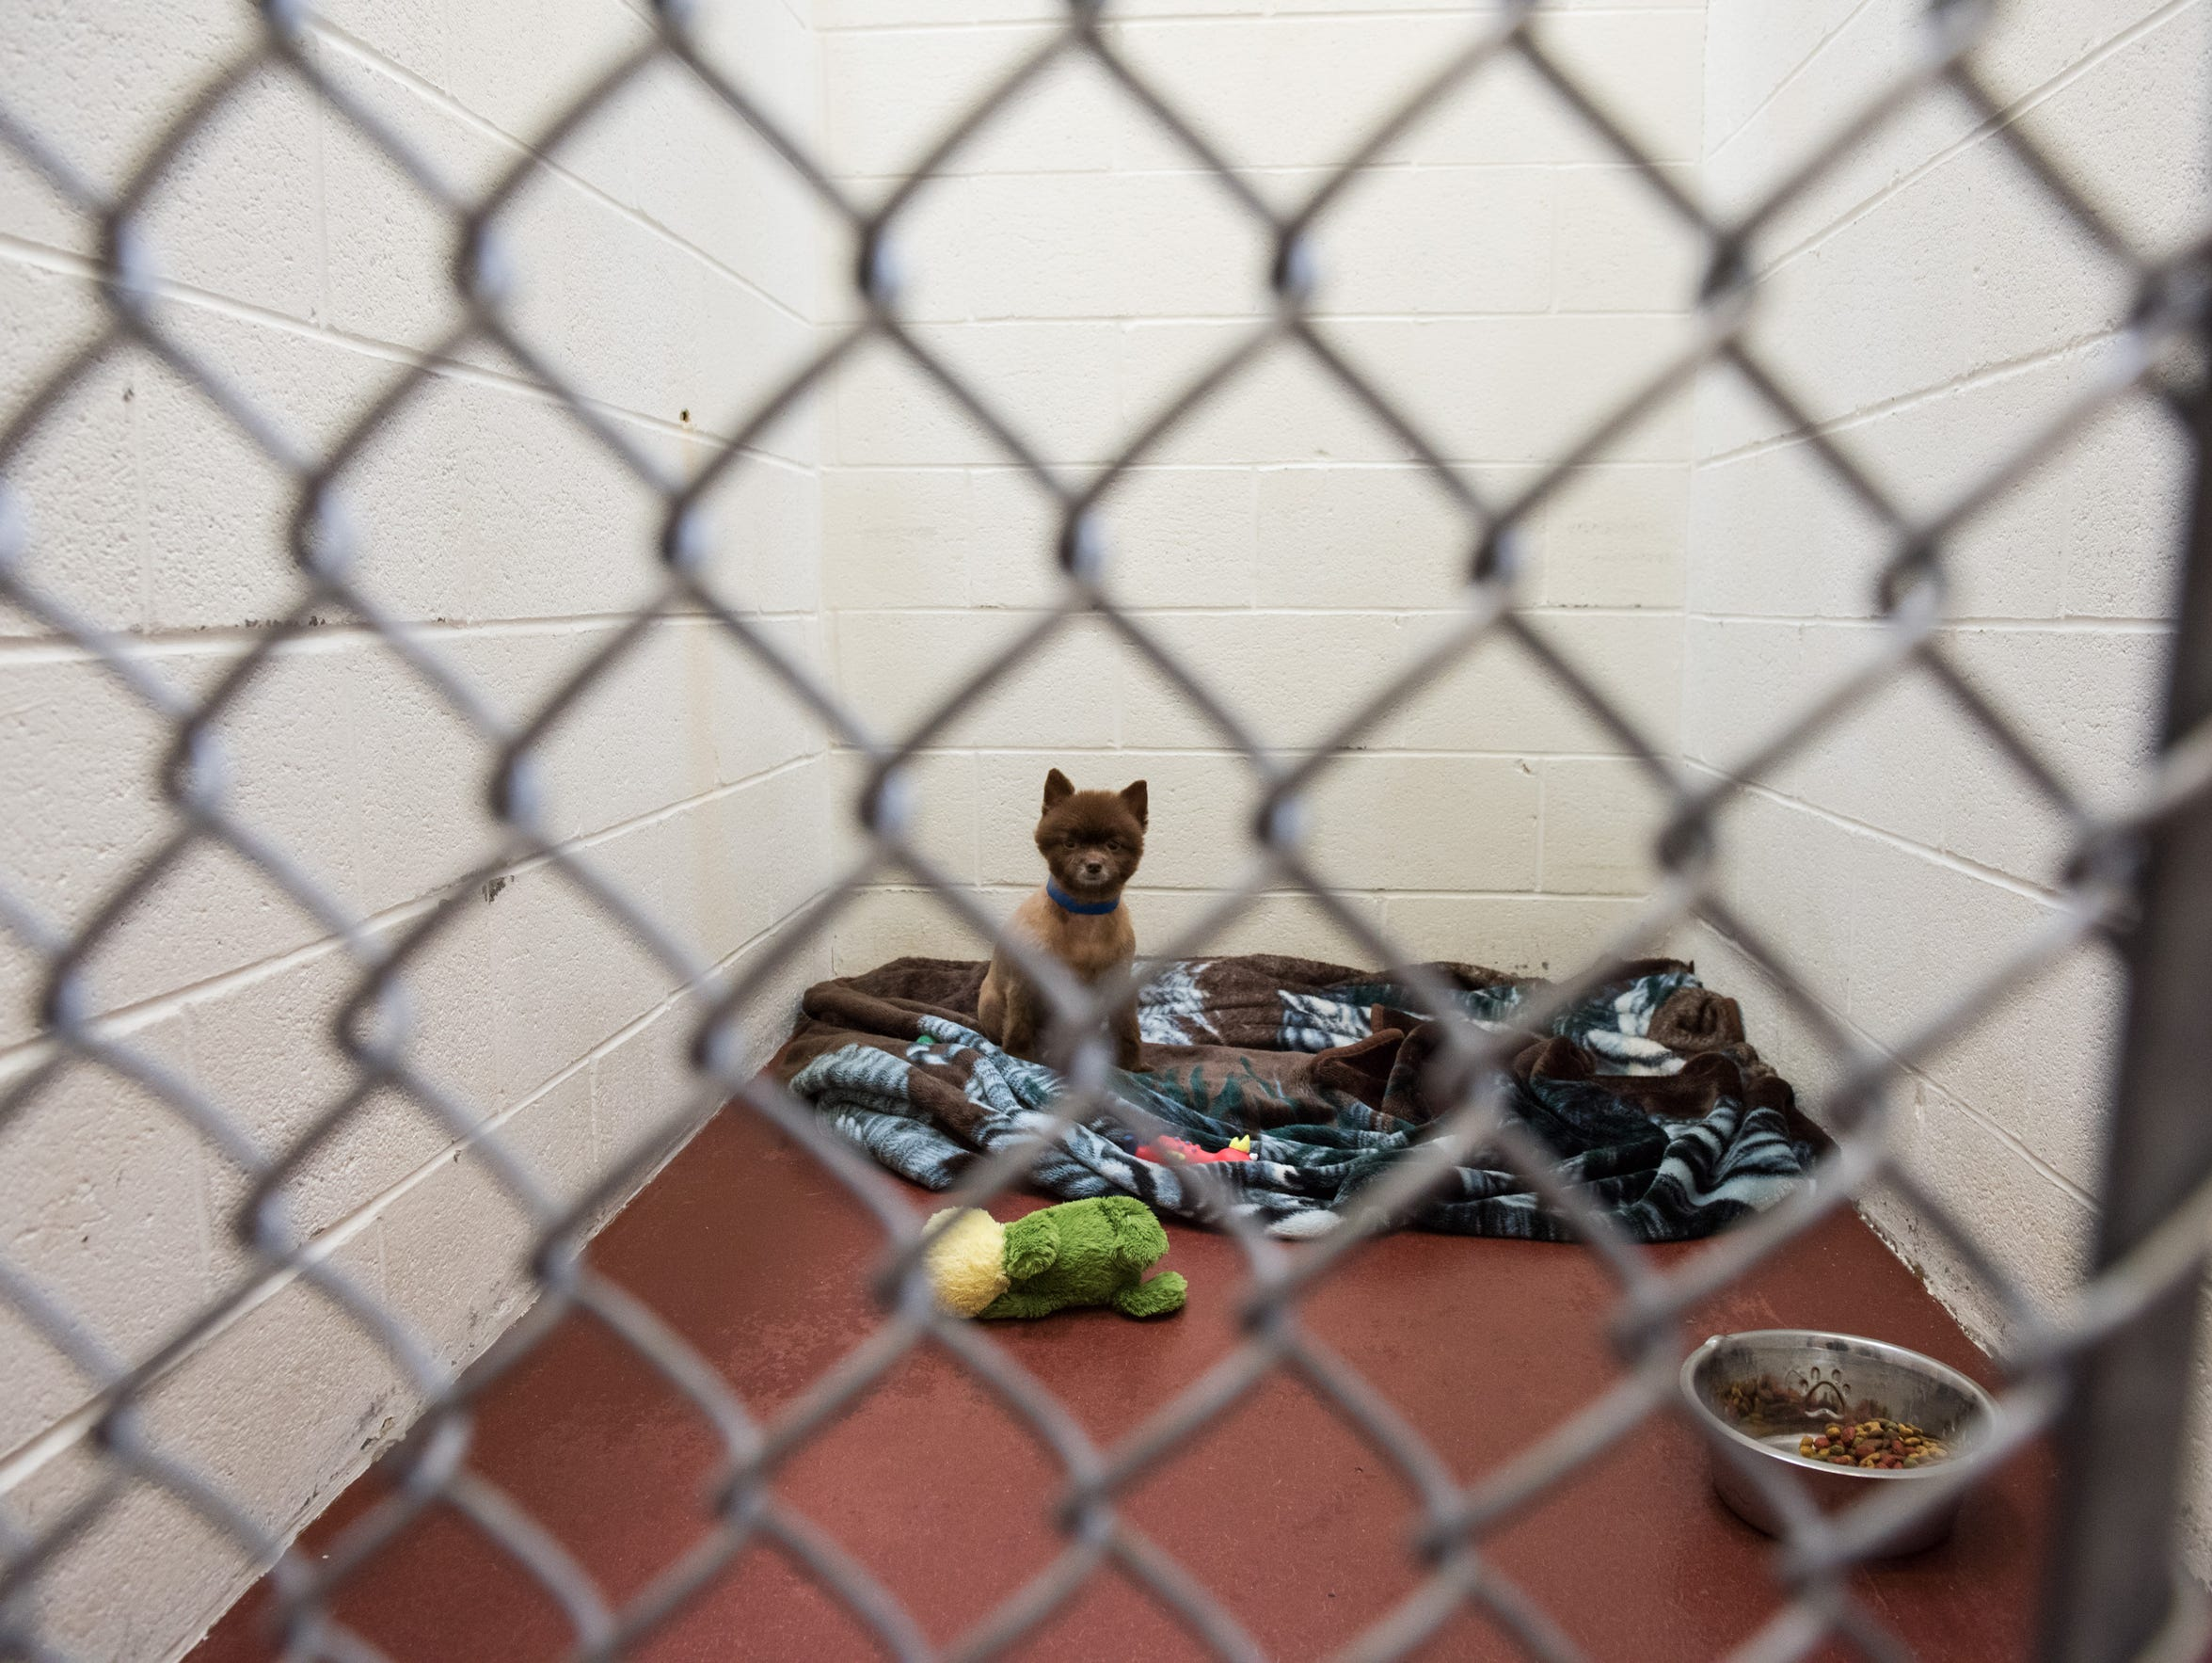 A dog seized in Eden sits alone in its kennel at the